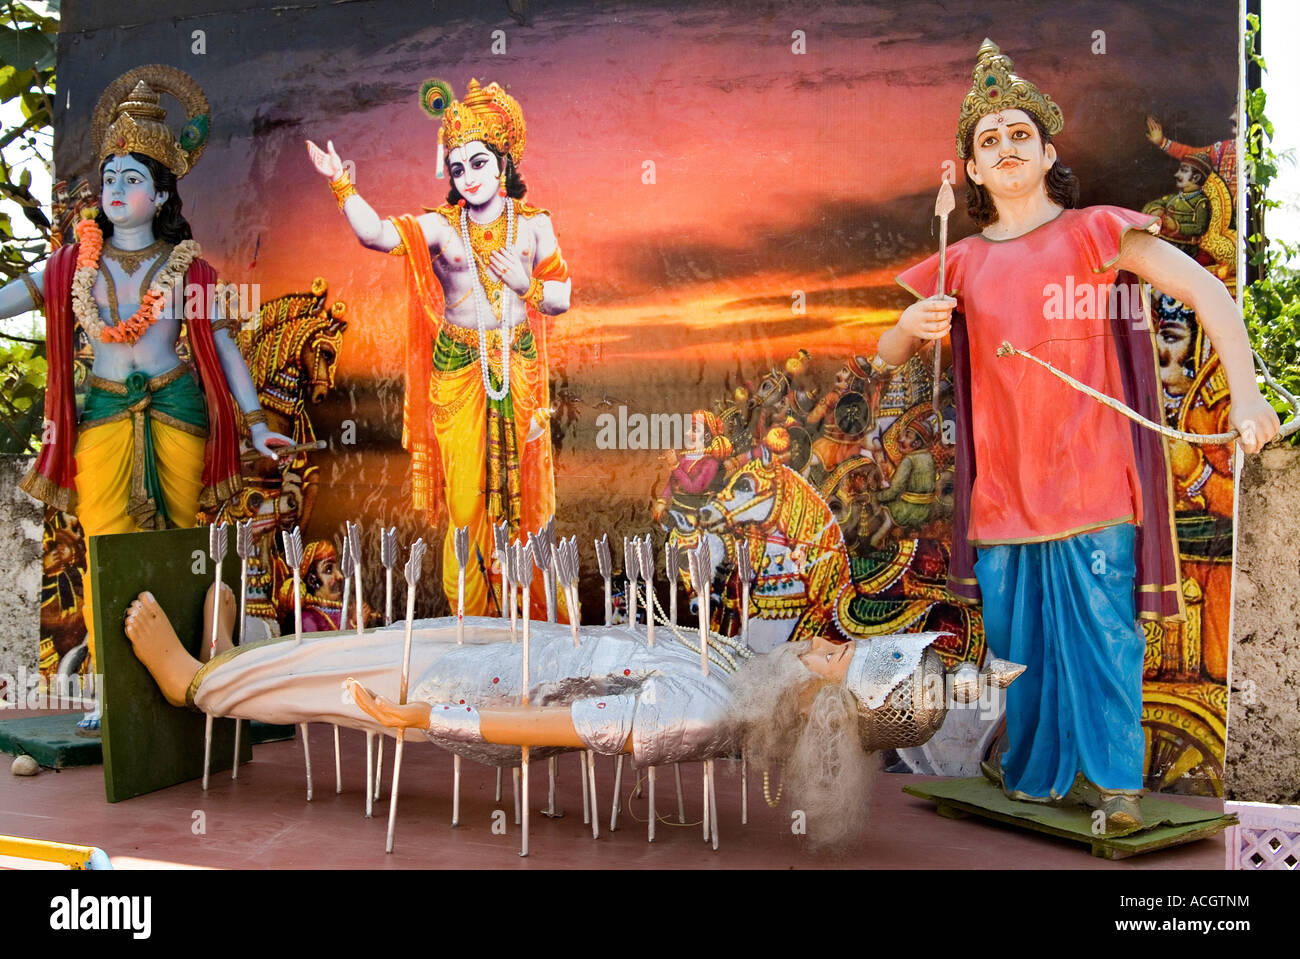 A PAINTING OF KRISHNA AND ARJUN WITH BOW AND ARROW STANDING ALONG THE ARROW RIDDEN BODY OF BHISHAM PITAMA - Stock Image